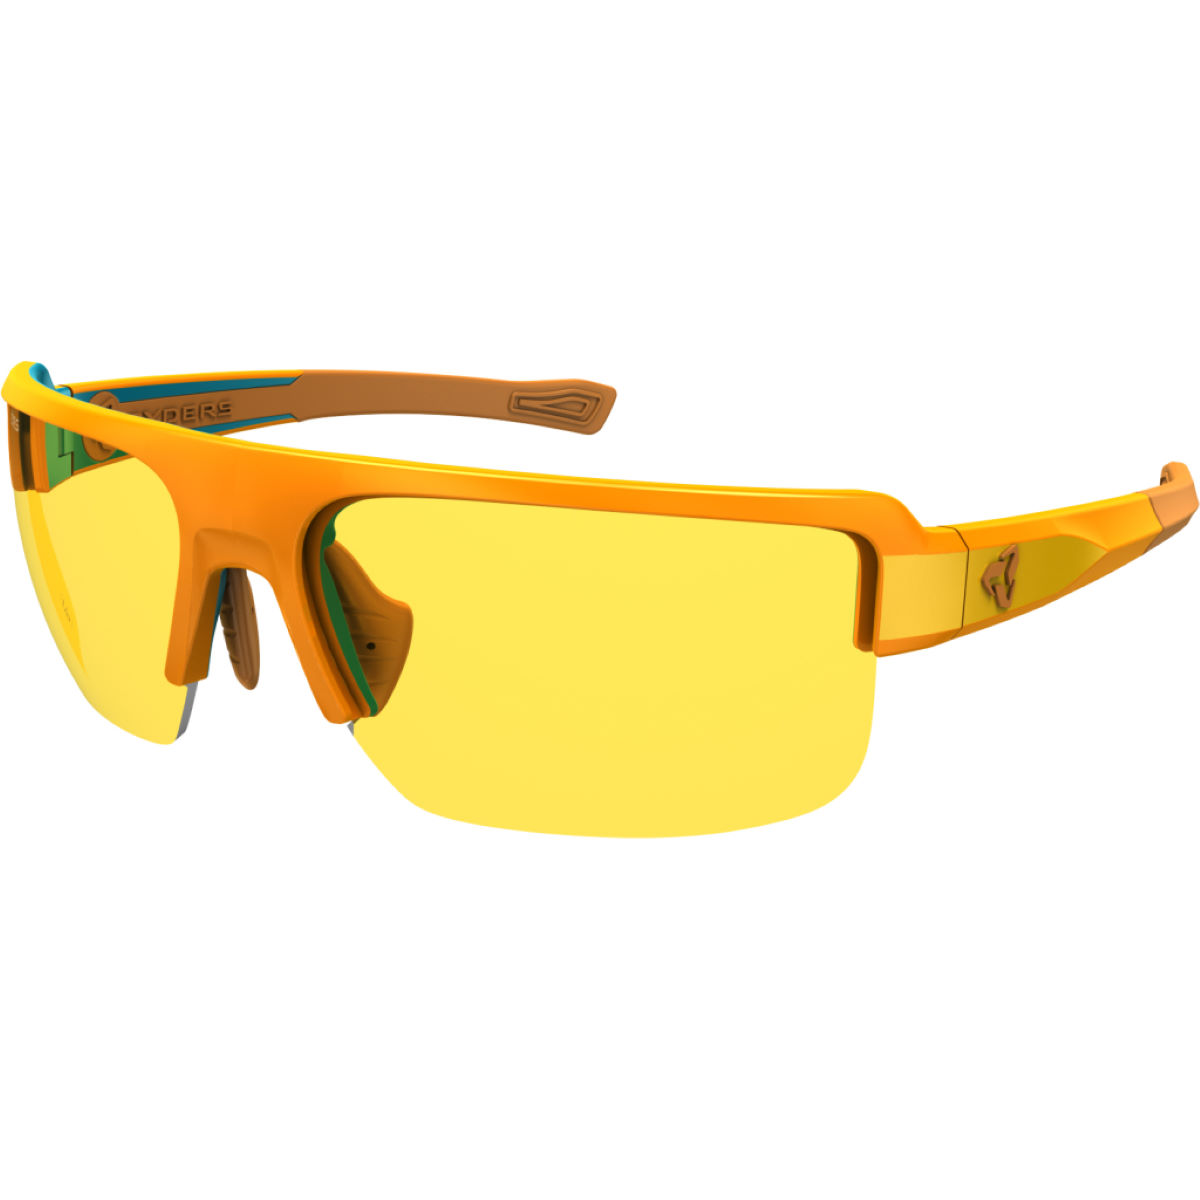 Ryders Eyewear Seventh Photo Sunglasses - Gafas de sol